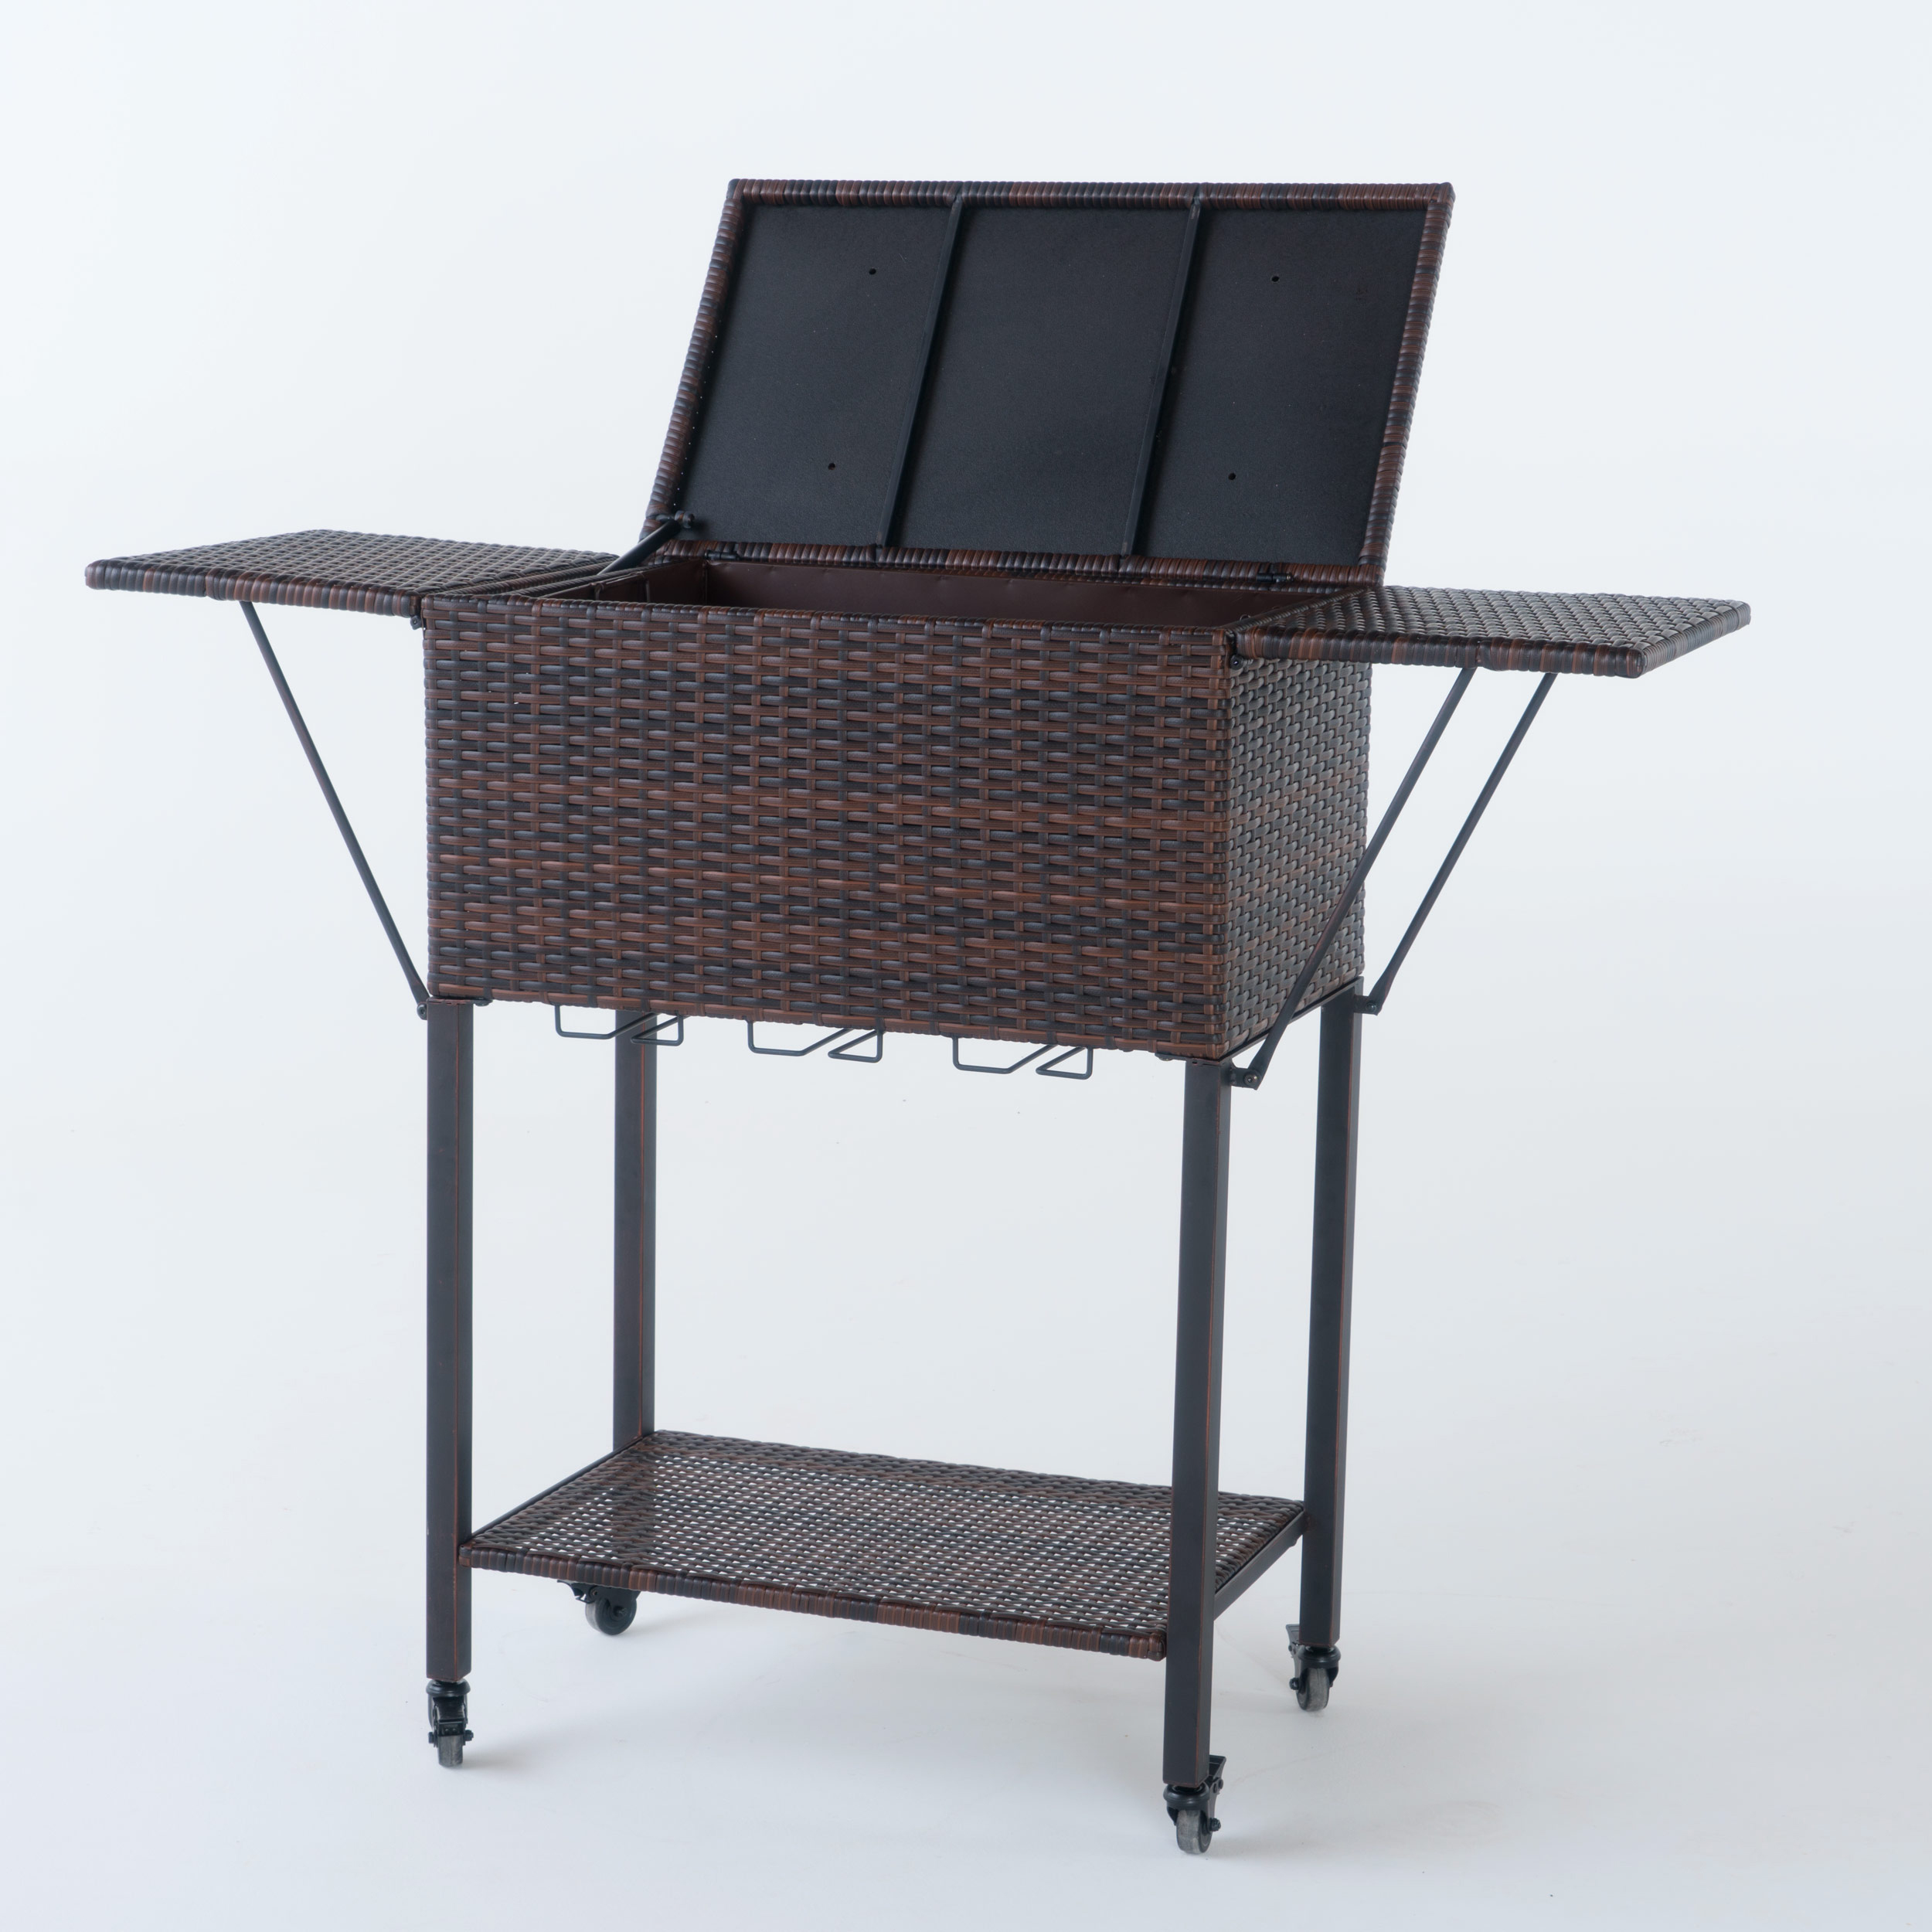 Parma Outdoor Portable Multibrown Wicker Bar Serving Cart with Wine Glass Rack by GDF Studio